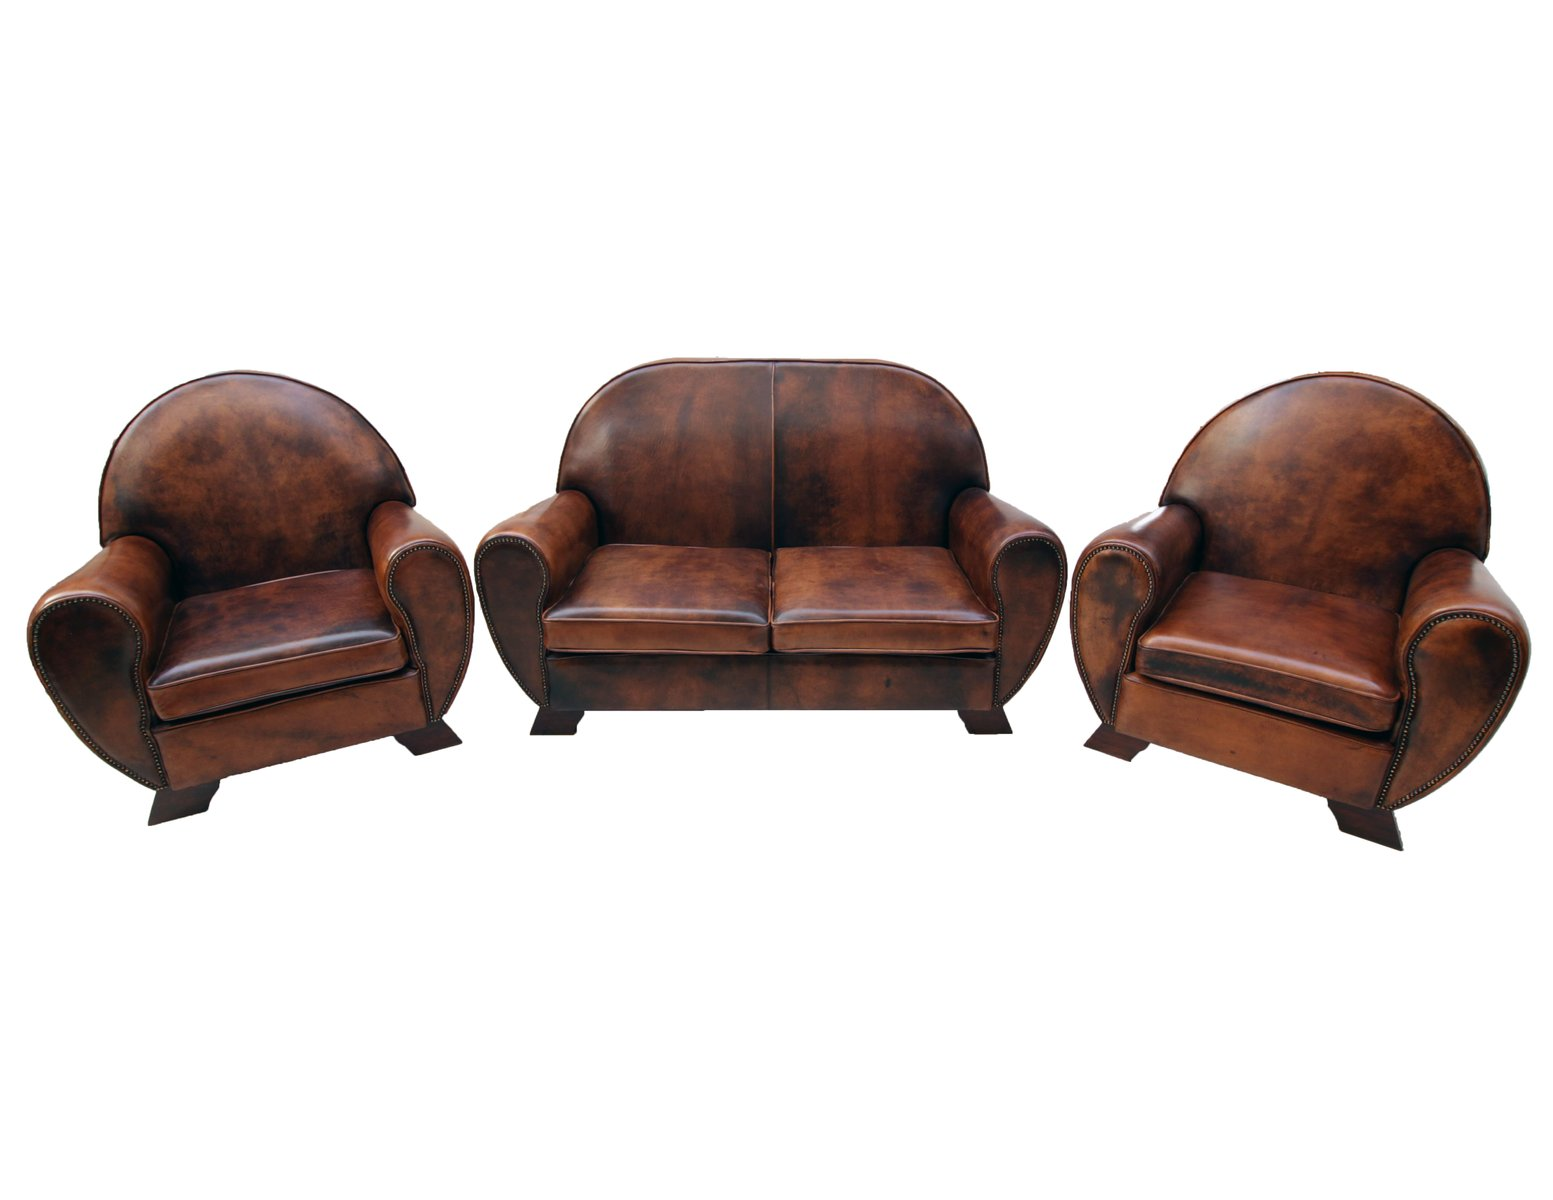 Vintage Leather Club Living Room Set, Set of 3 for sale at Pamono